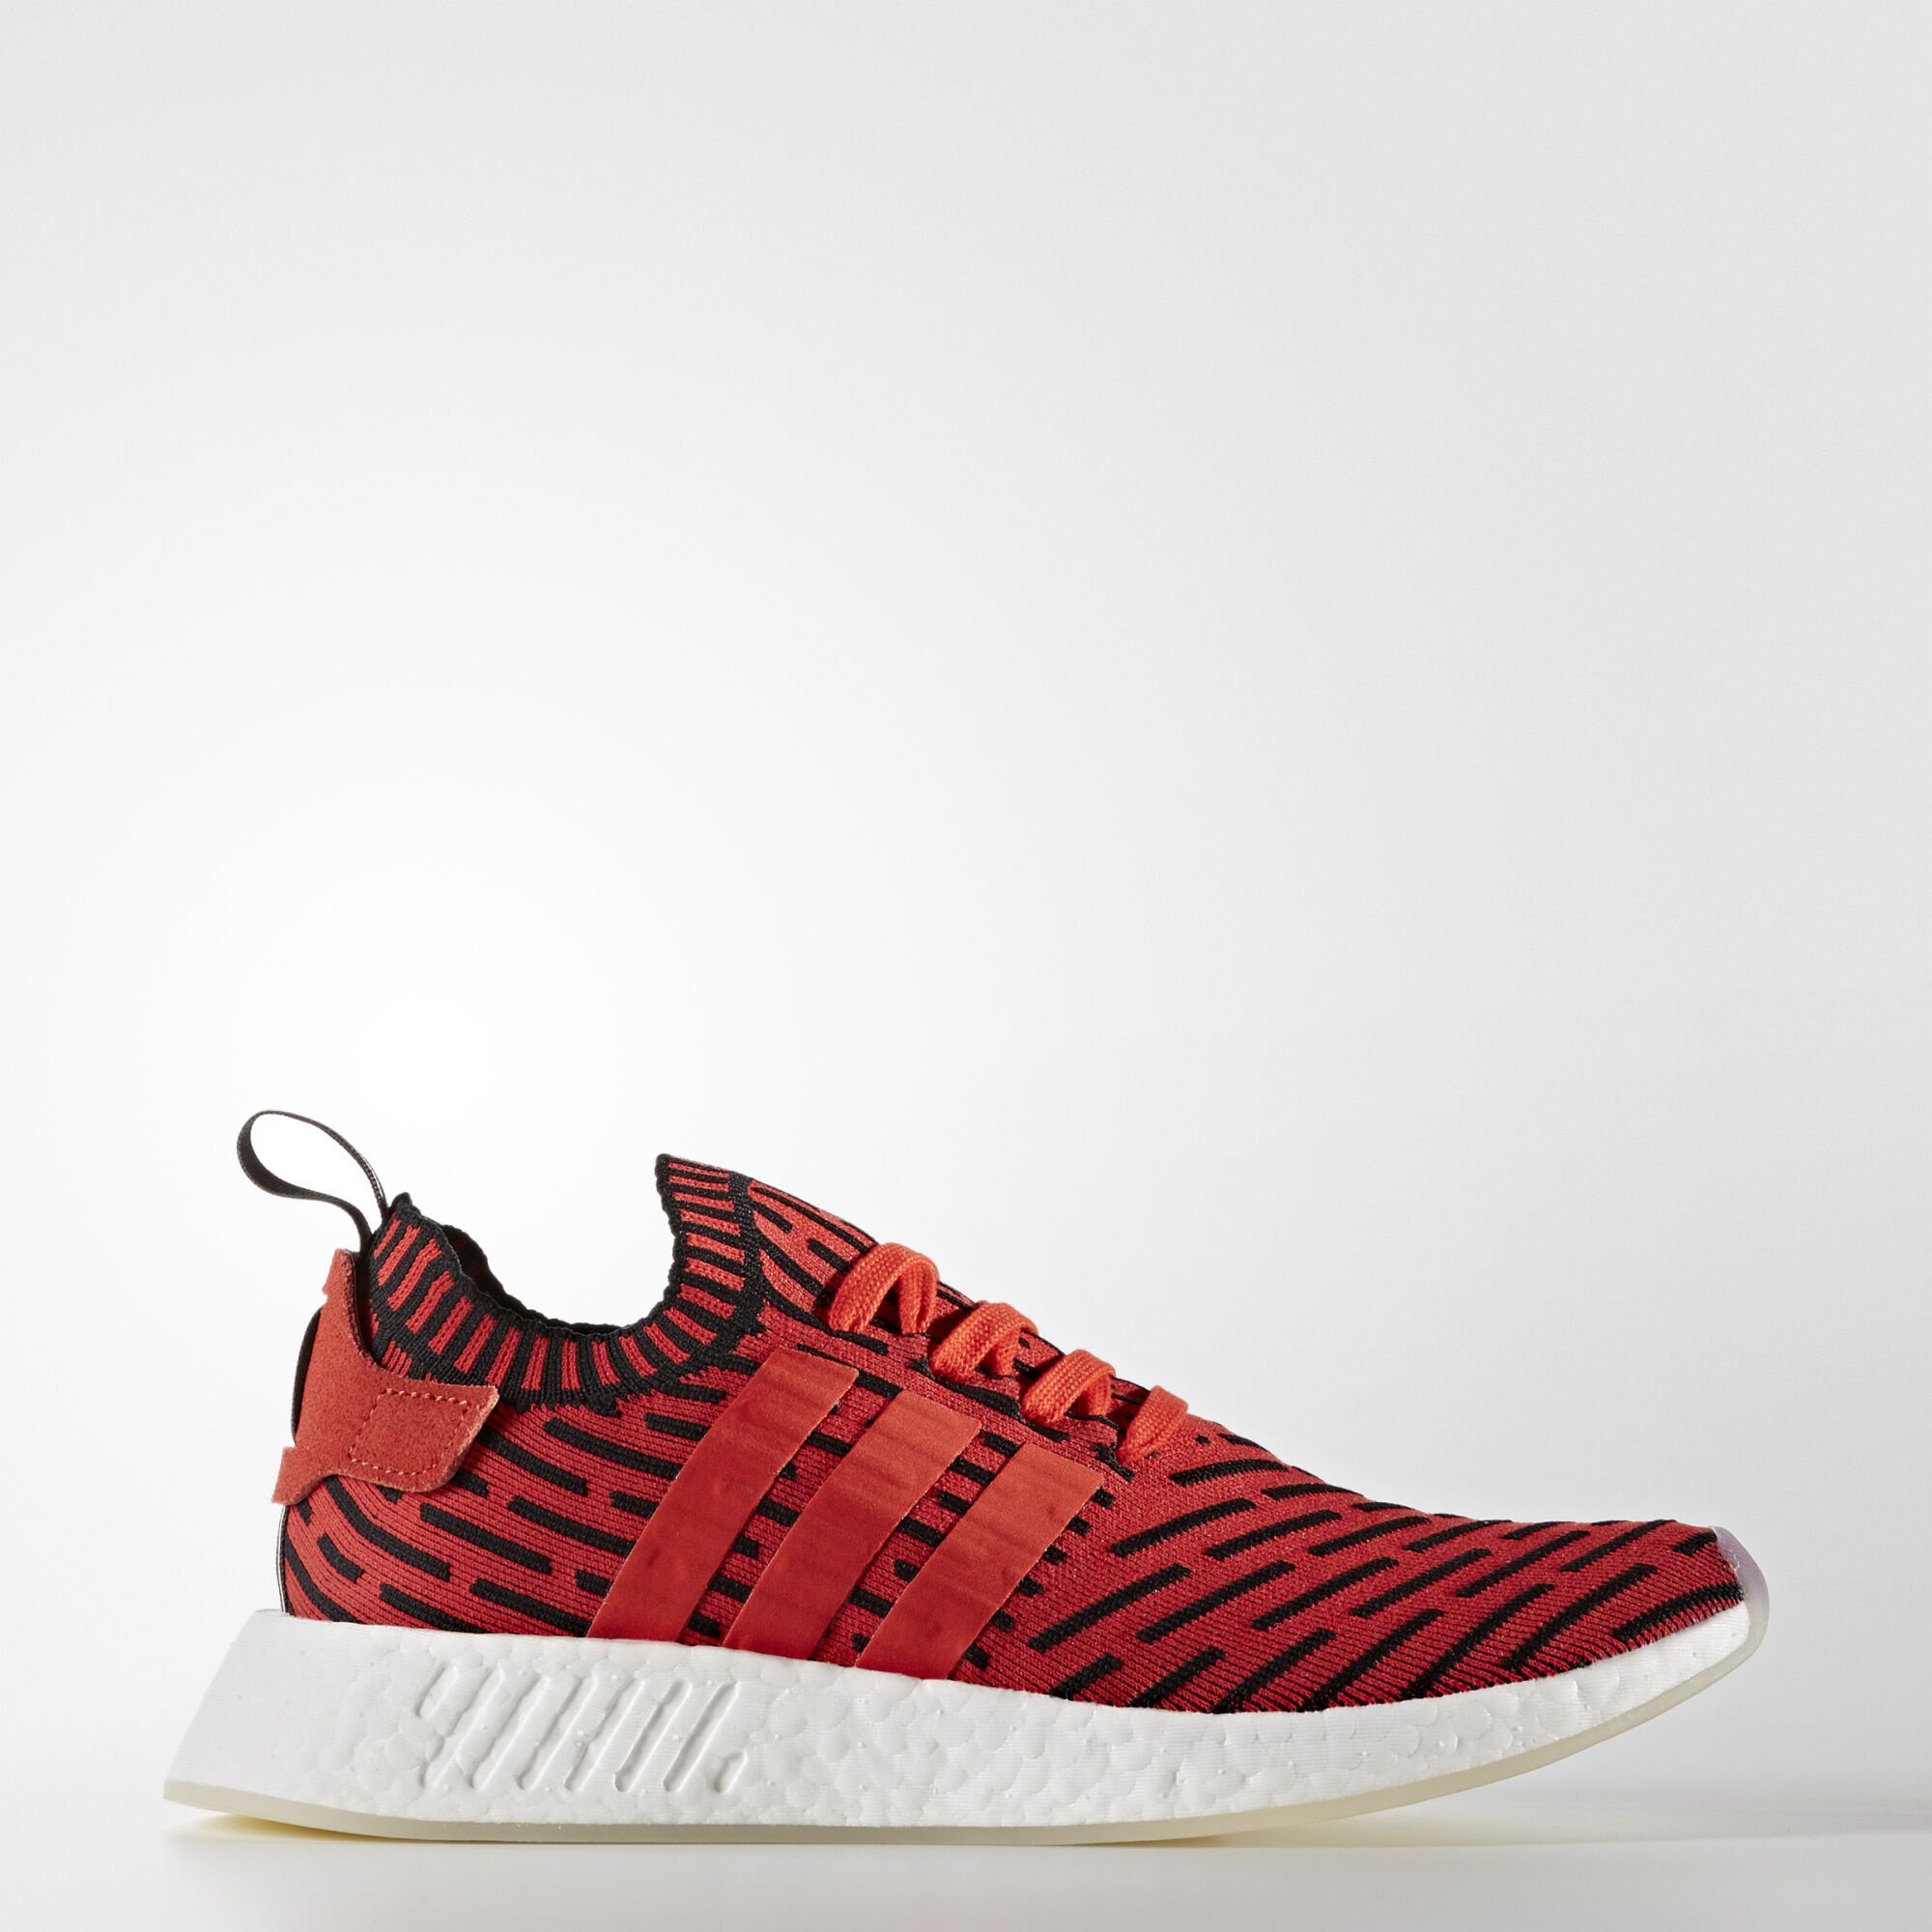 Cheap Adidas Originals NMD R2 Primeknit PK men lifestyle sneakers NEW